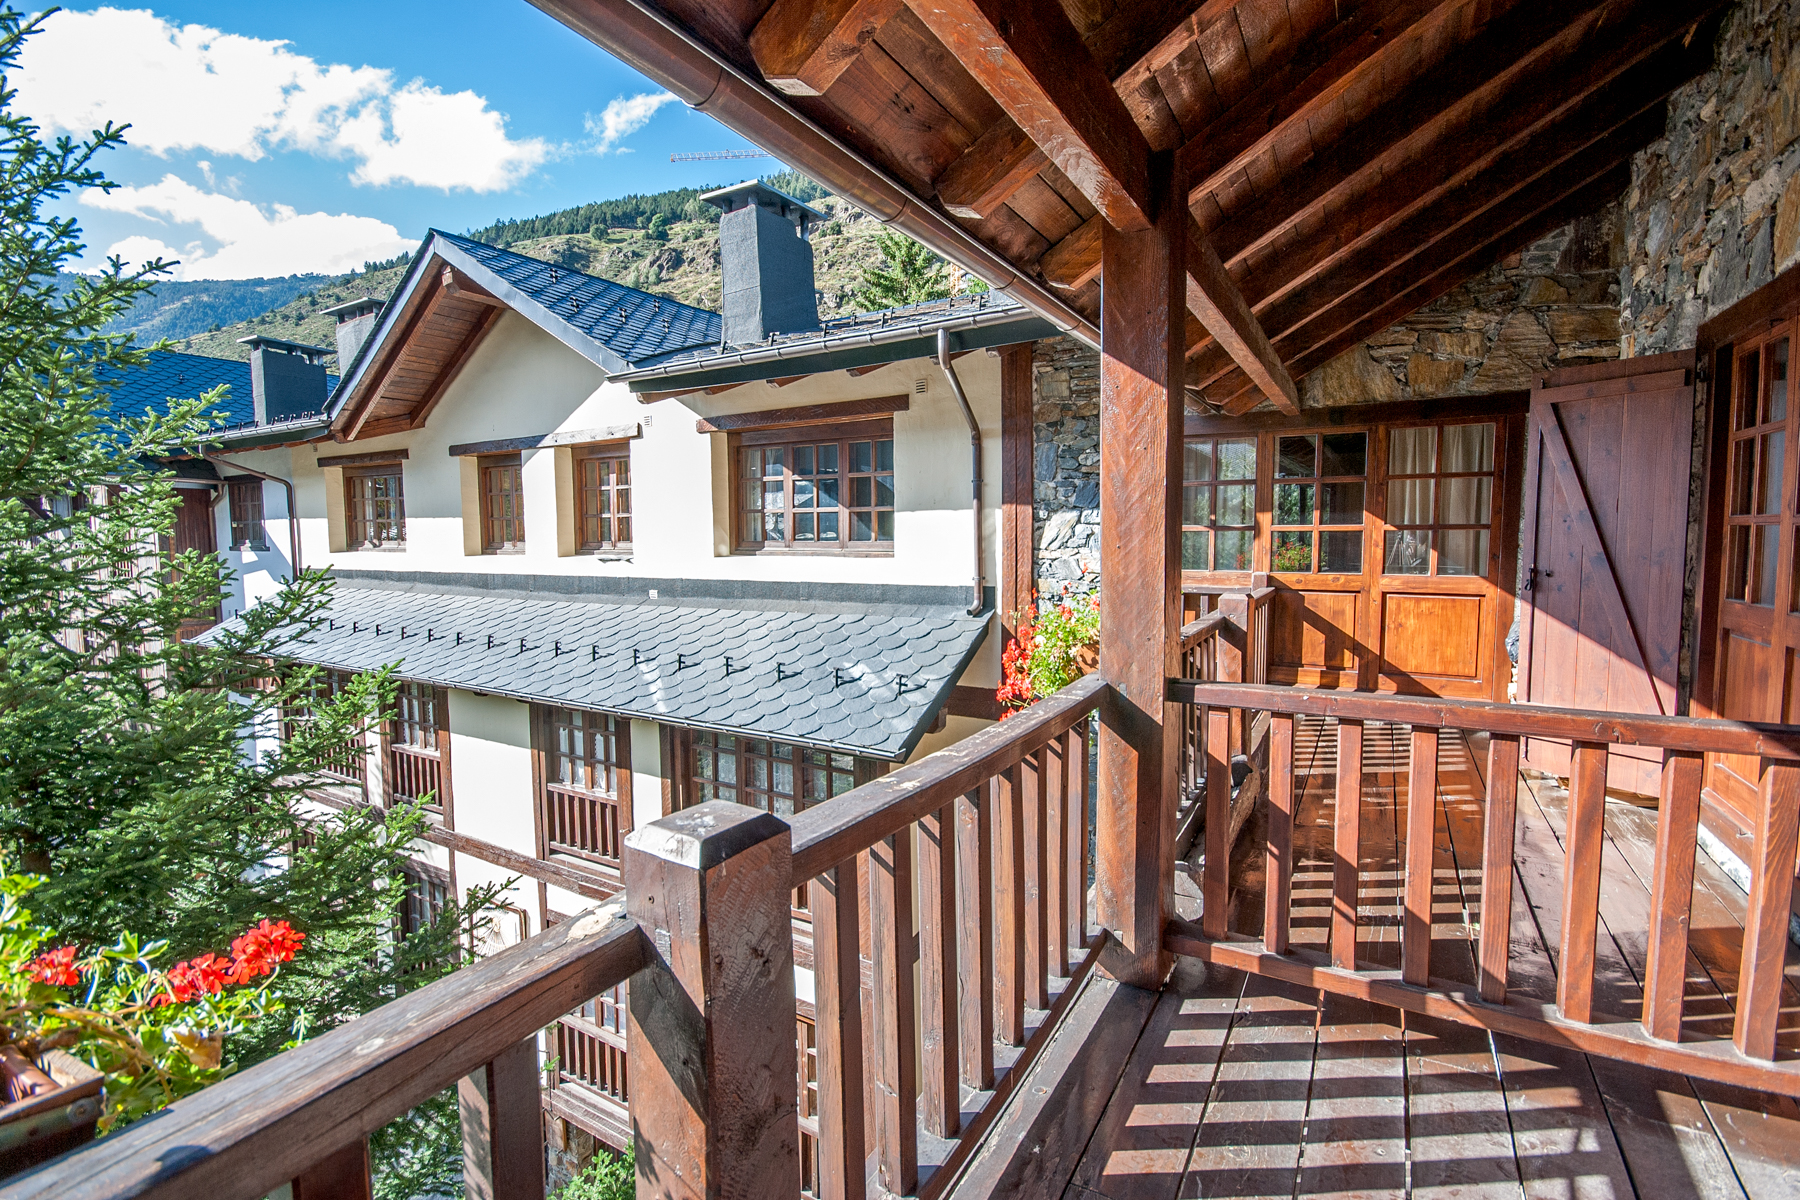 Квартира для того Продажа на Flat for sale in Tarter (El) Other Canillo, Canillo, AD100 Andorra